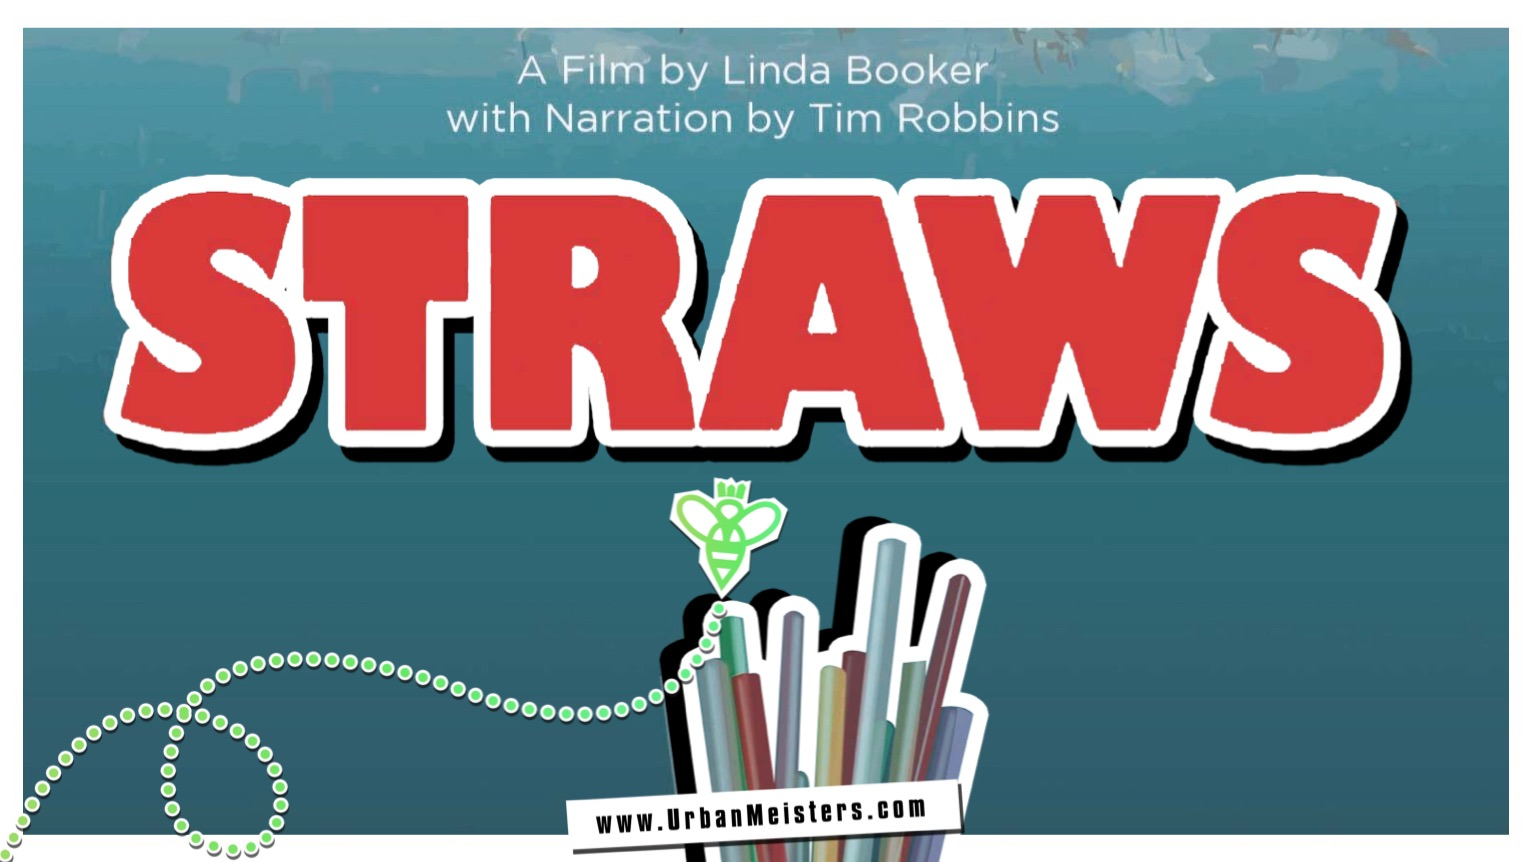 [EXCLUSIVE] Award winning filmmaker Linda Booker of Straws on ocean plastic